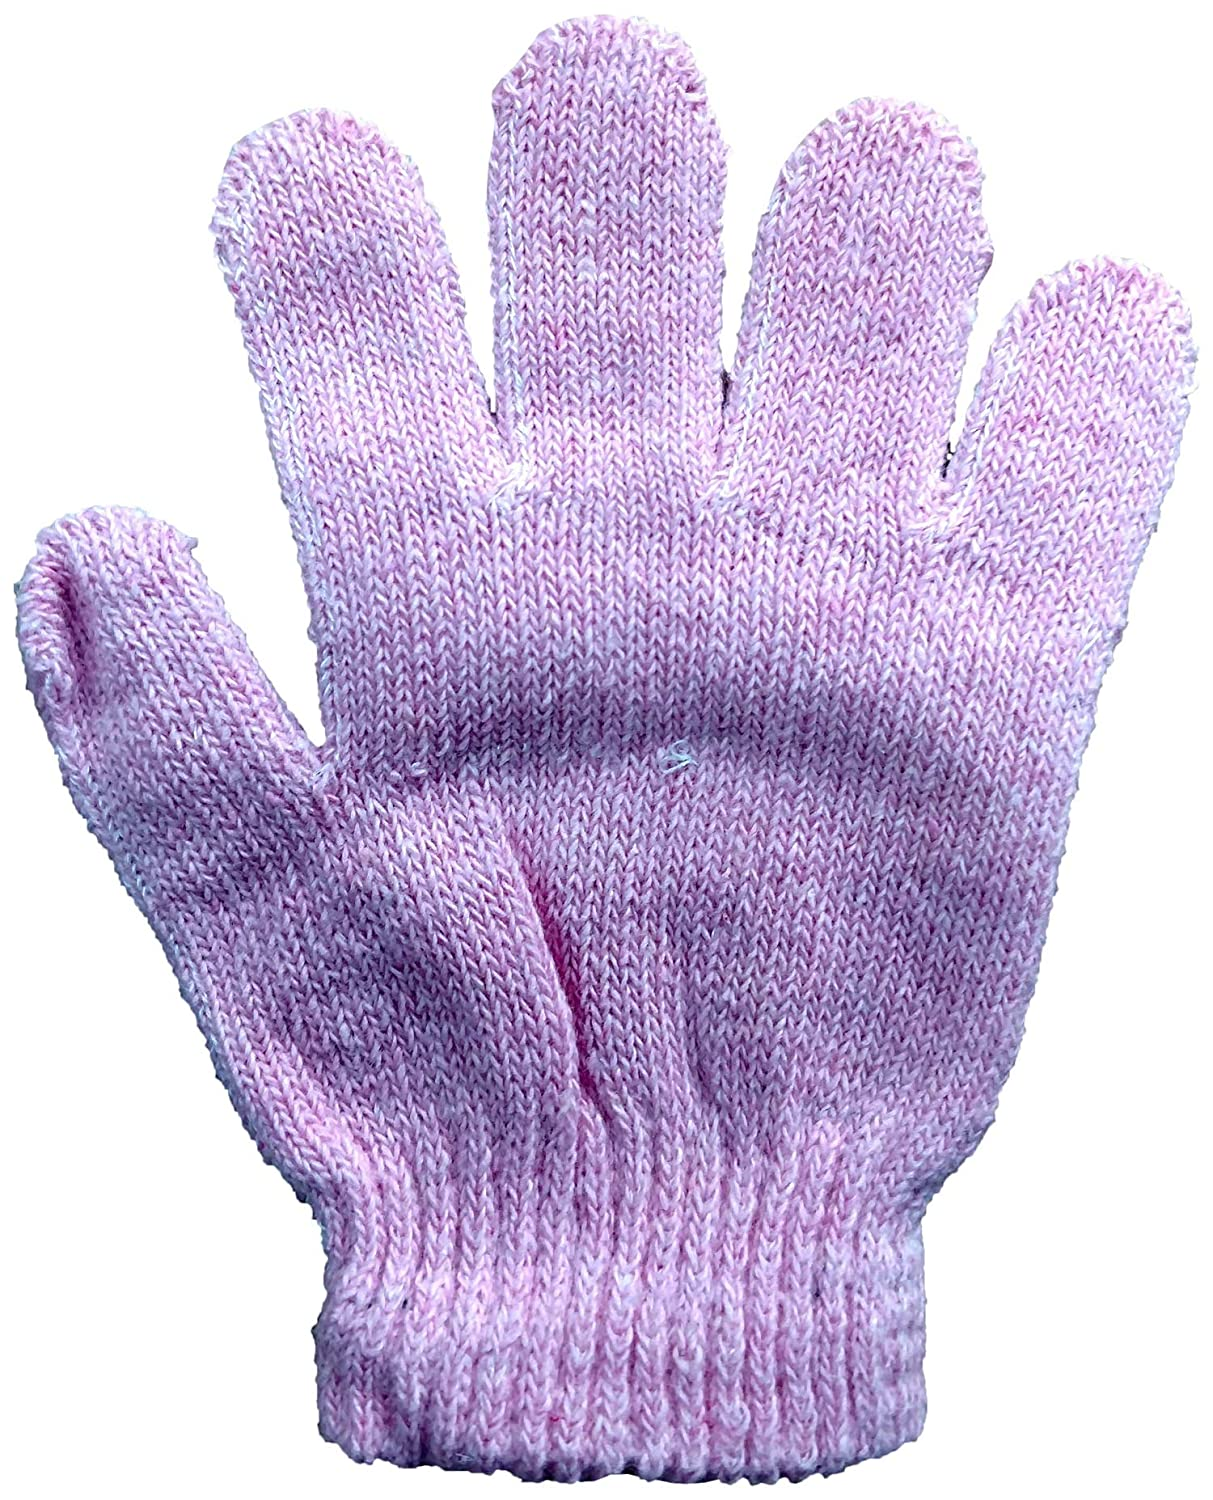 Yacht /& Smith 12 Pairs Of Kids Solid Color Winter Warm Strechable Magic Gloves